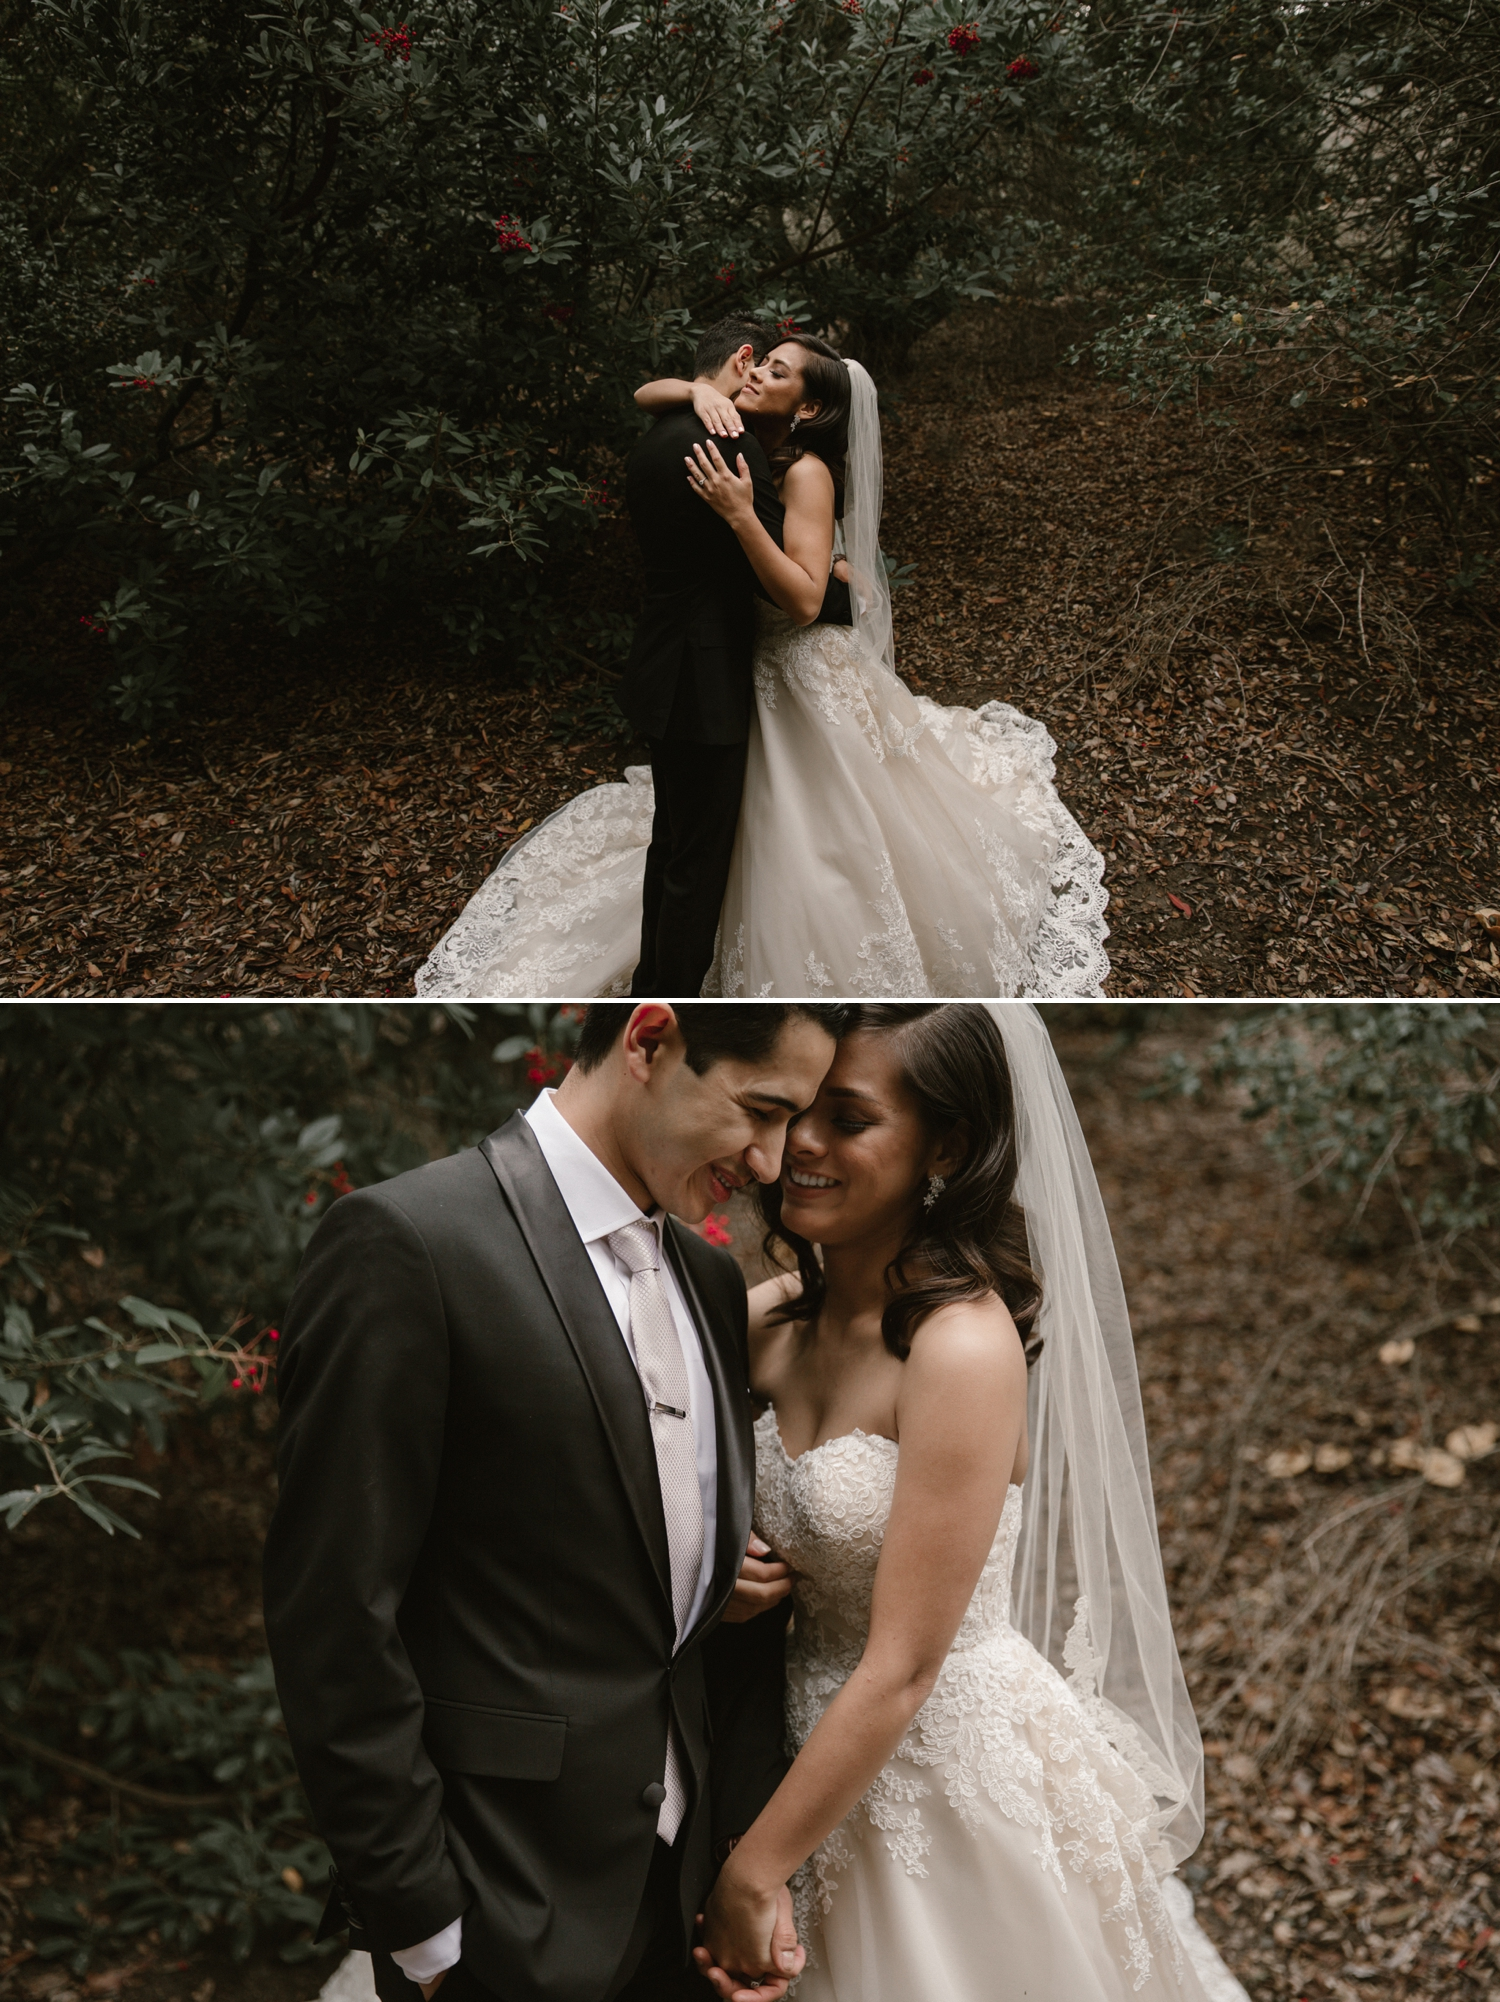 Bride and groom portraits at Oak Canyon Nature Center by Paige Nelson